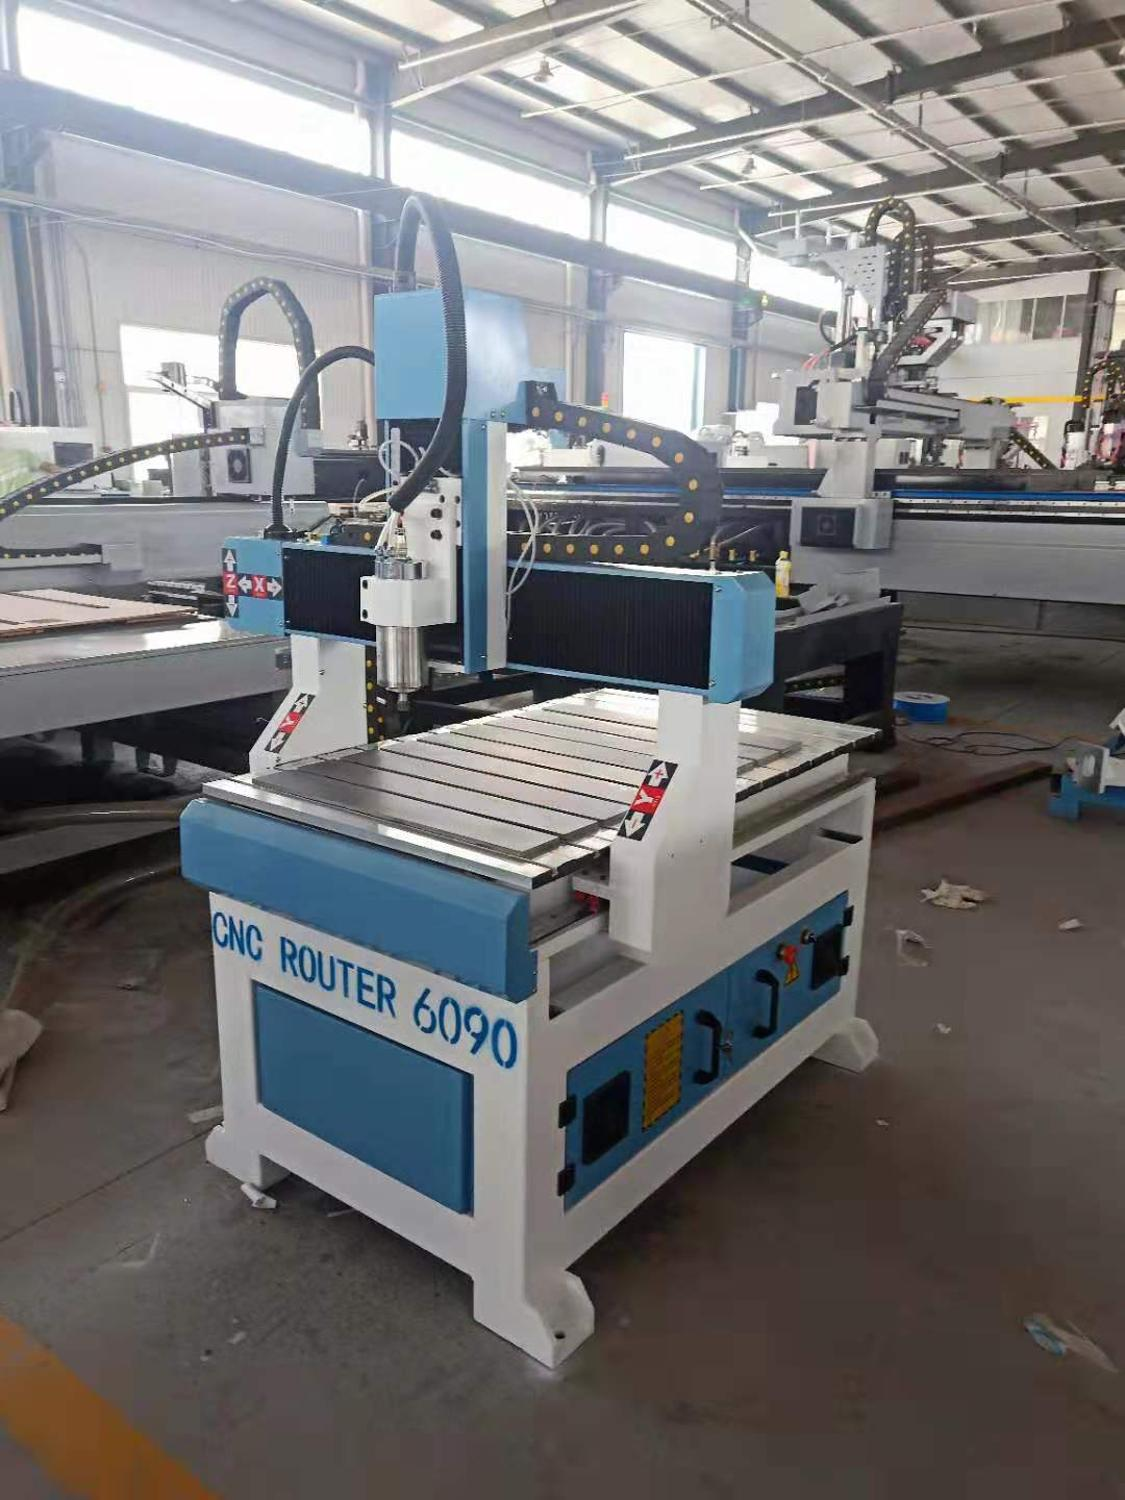 mini <font><b>6060</b></font> 6090 <font><b>cnc</b></font> milling machine <font><b>cnc</b></font> <font><b>router</b></font> machine image